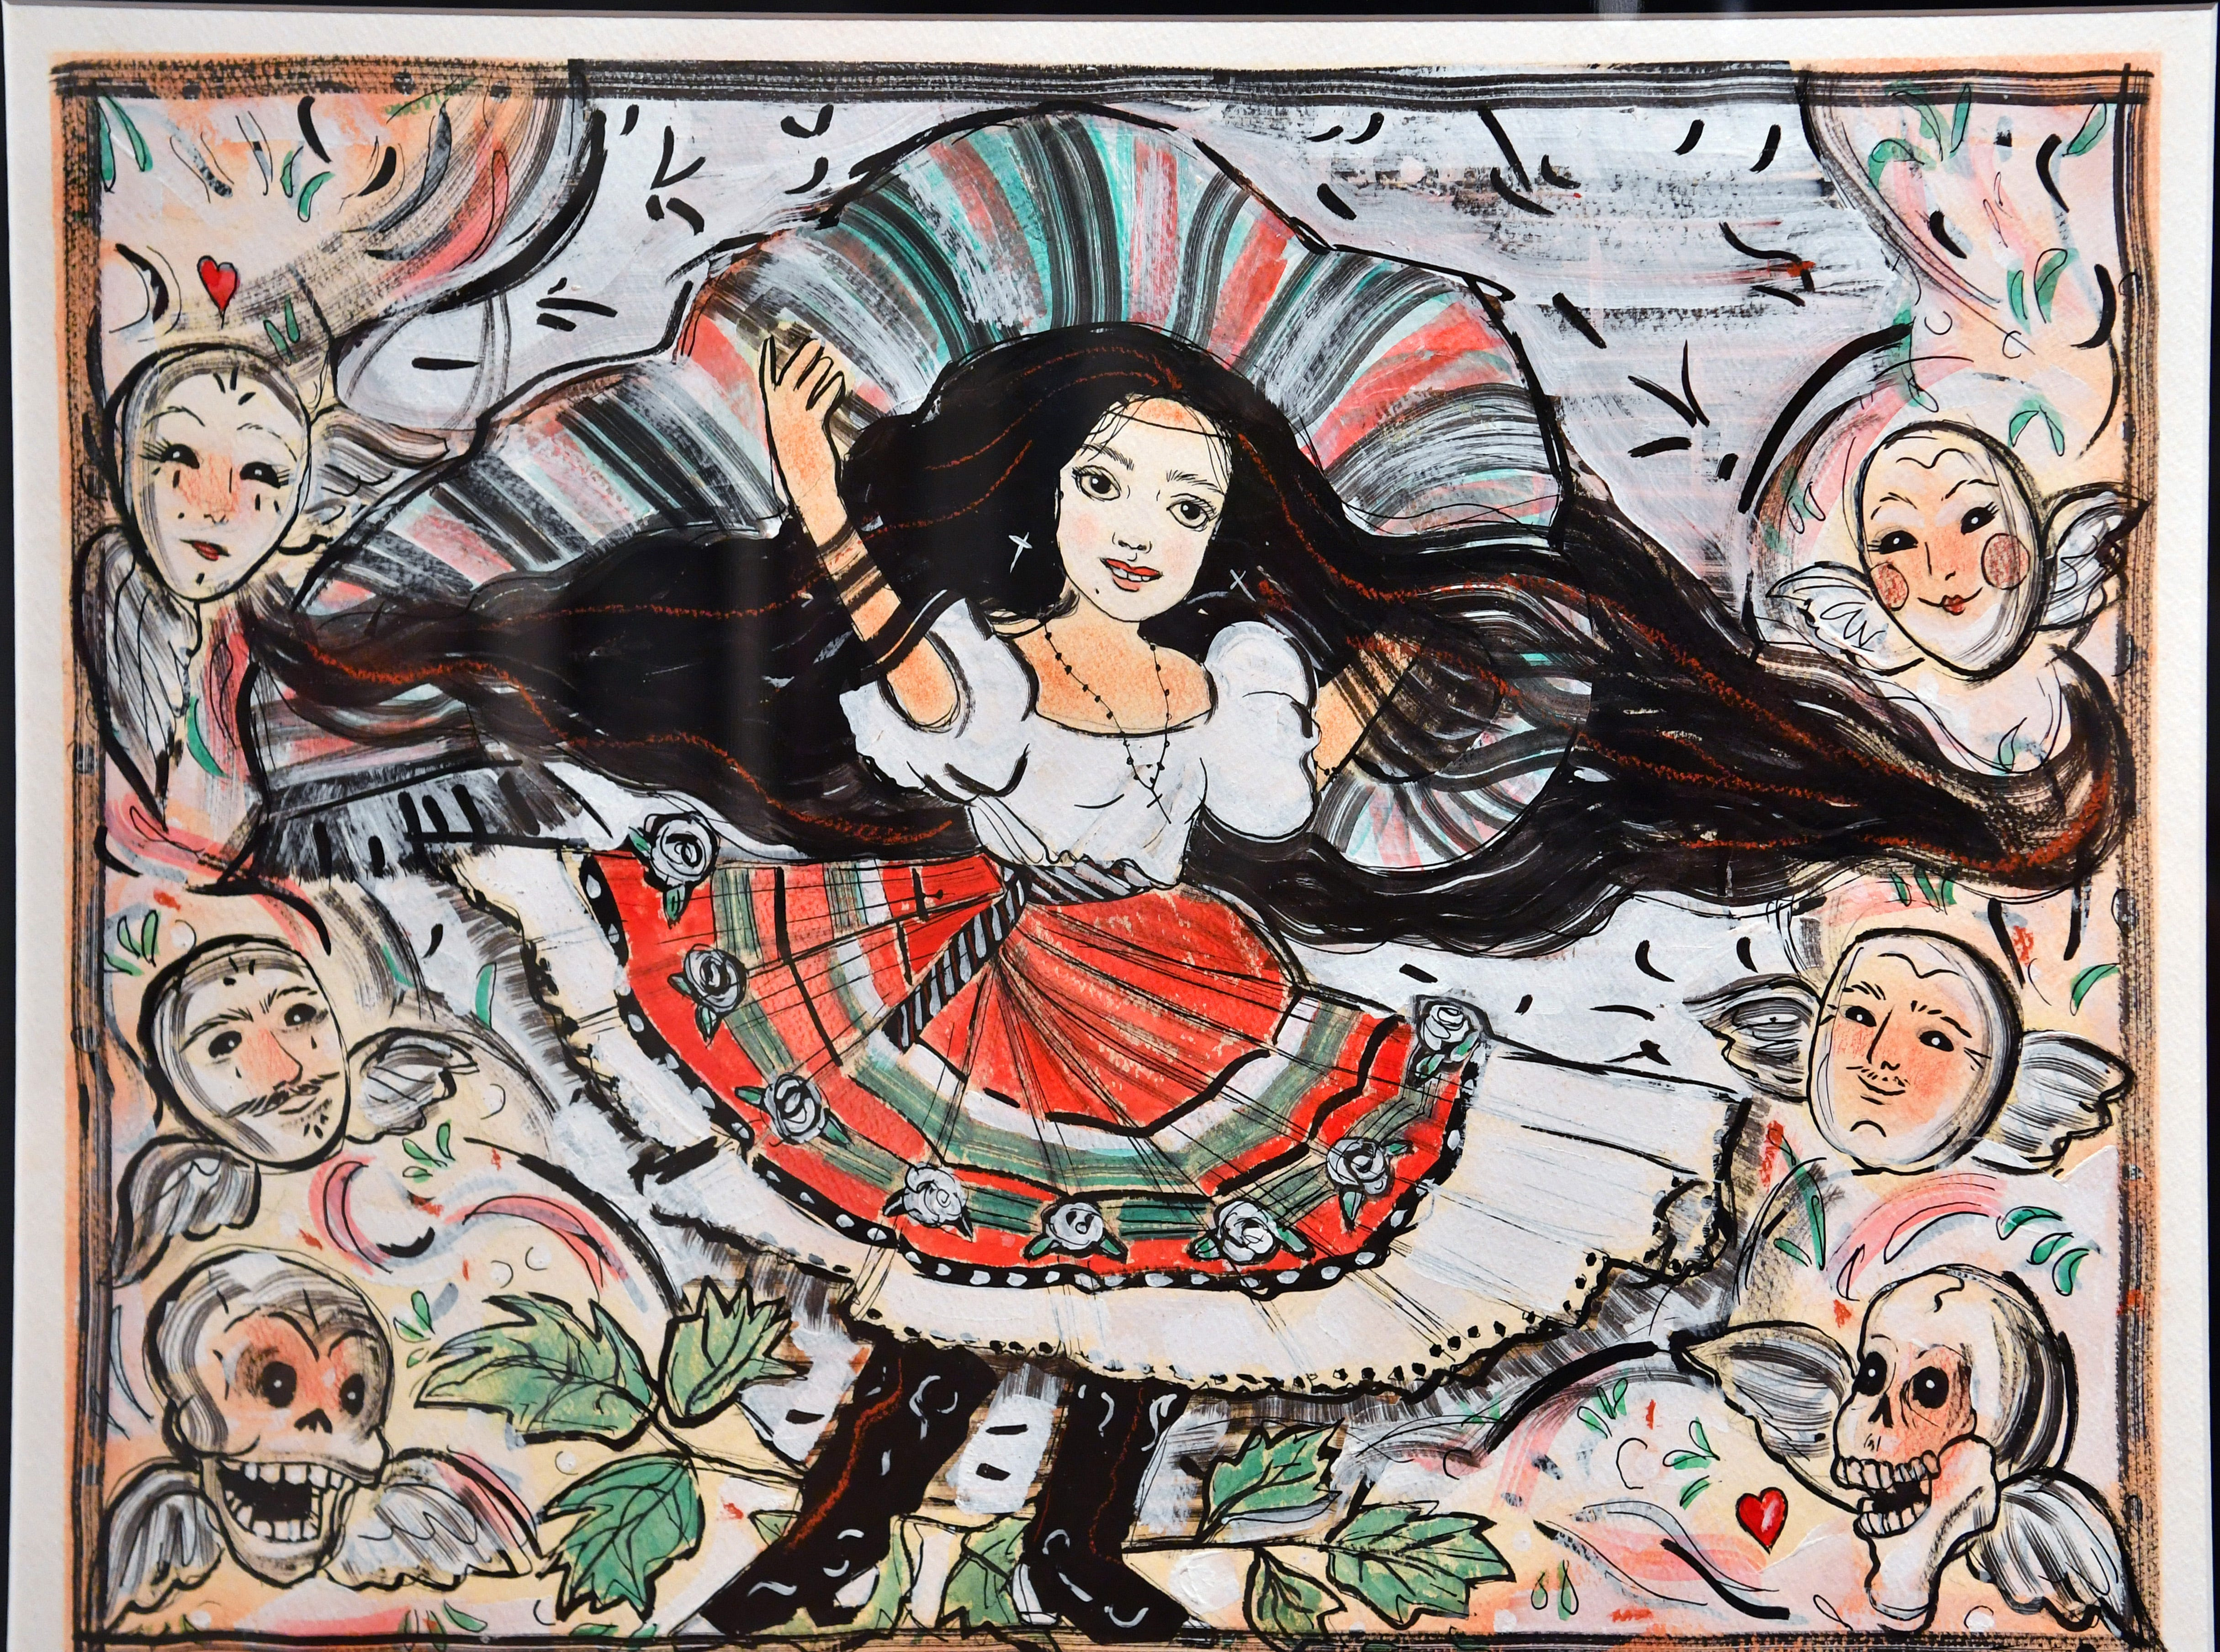 A mixed media piece by Sonya Fe using ink, chalk, gesso and watercolor on paper is from the vast collection of Chicano art of Cheech Marin. The exhibit runs through December 1 at the Wichita Falls Museum of Art at Midwestern State University.